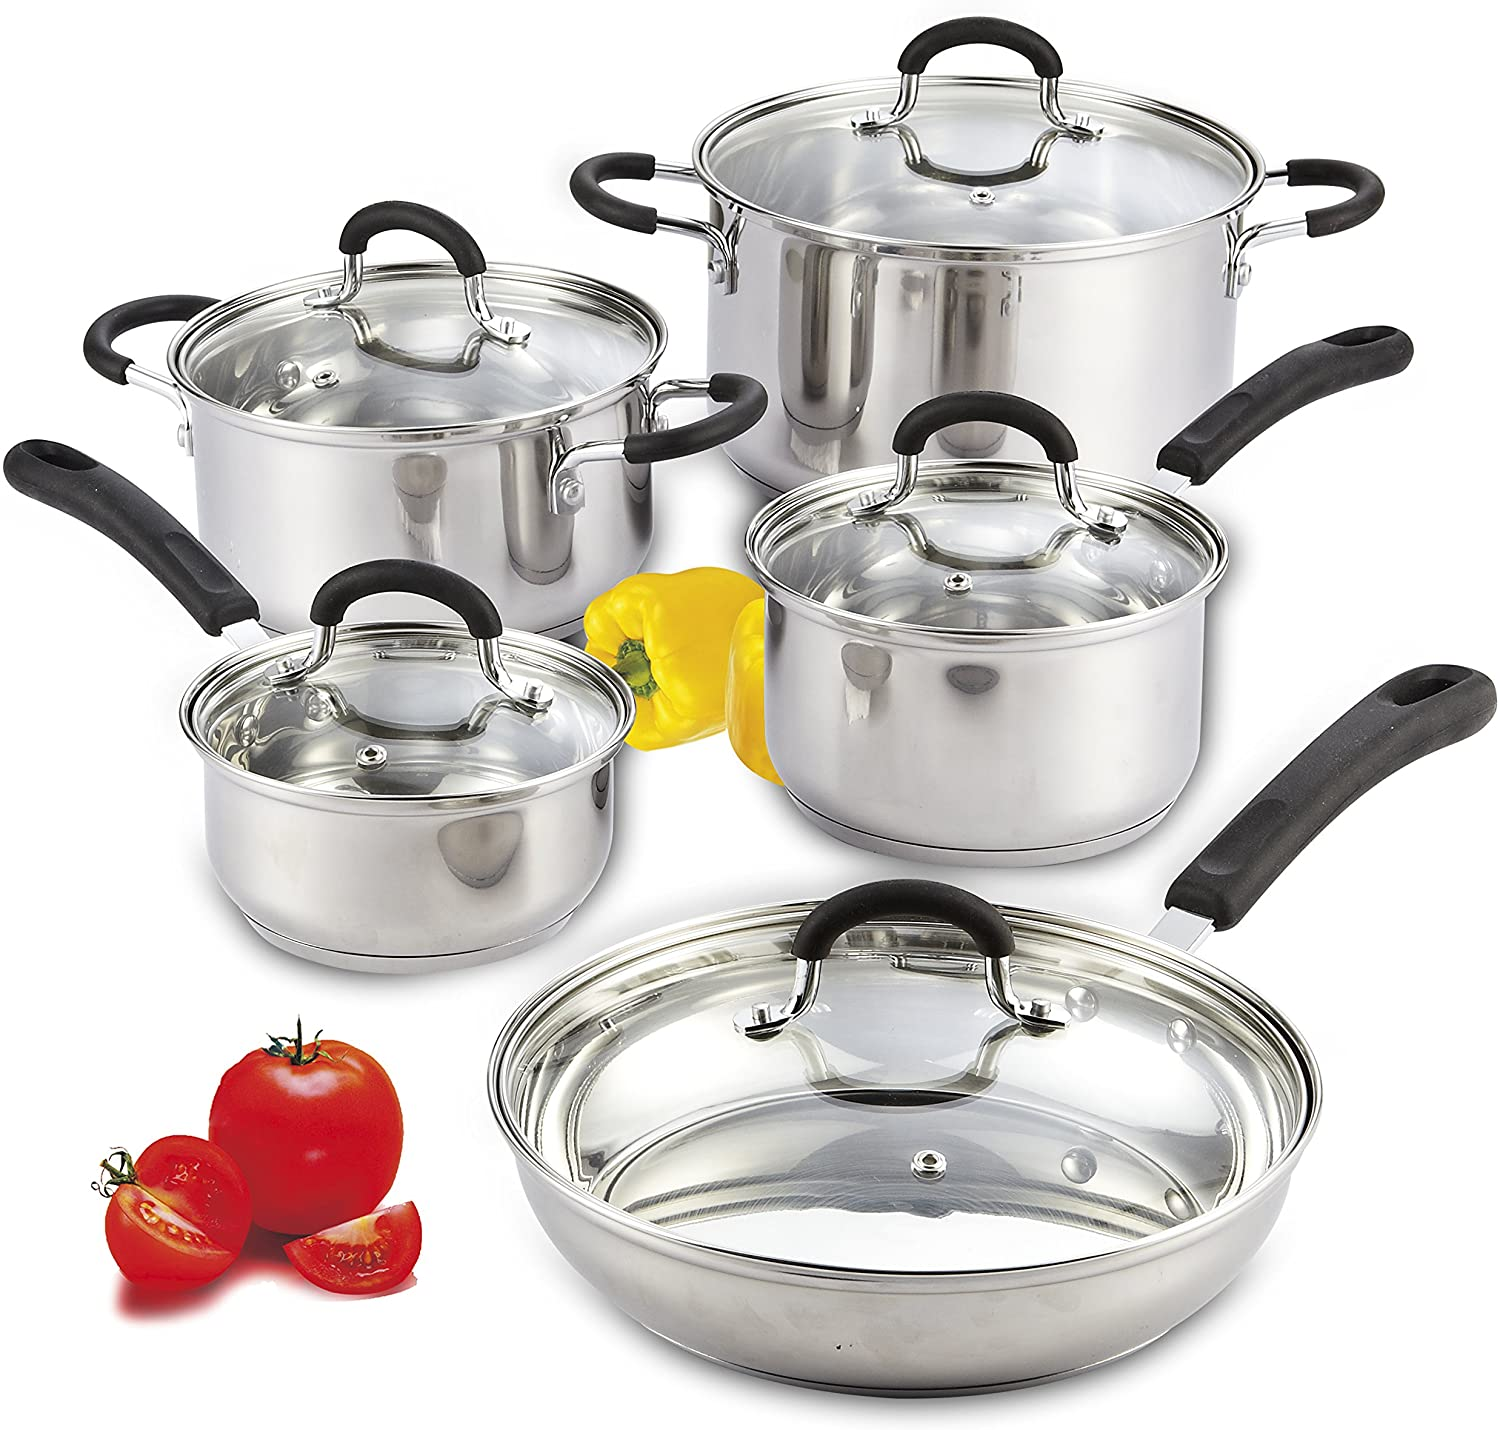 Cook N Home 10-Piece Stainless Steel Cookware for Glass Top Stoves